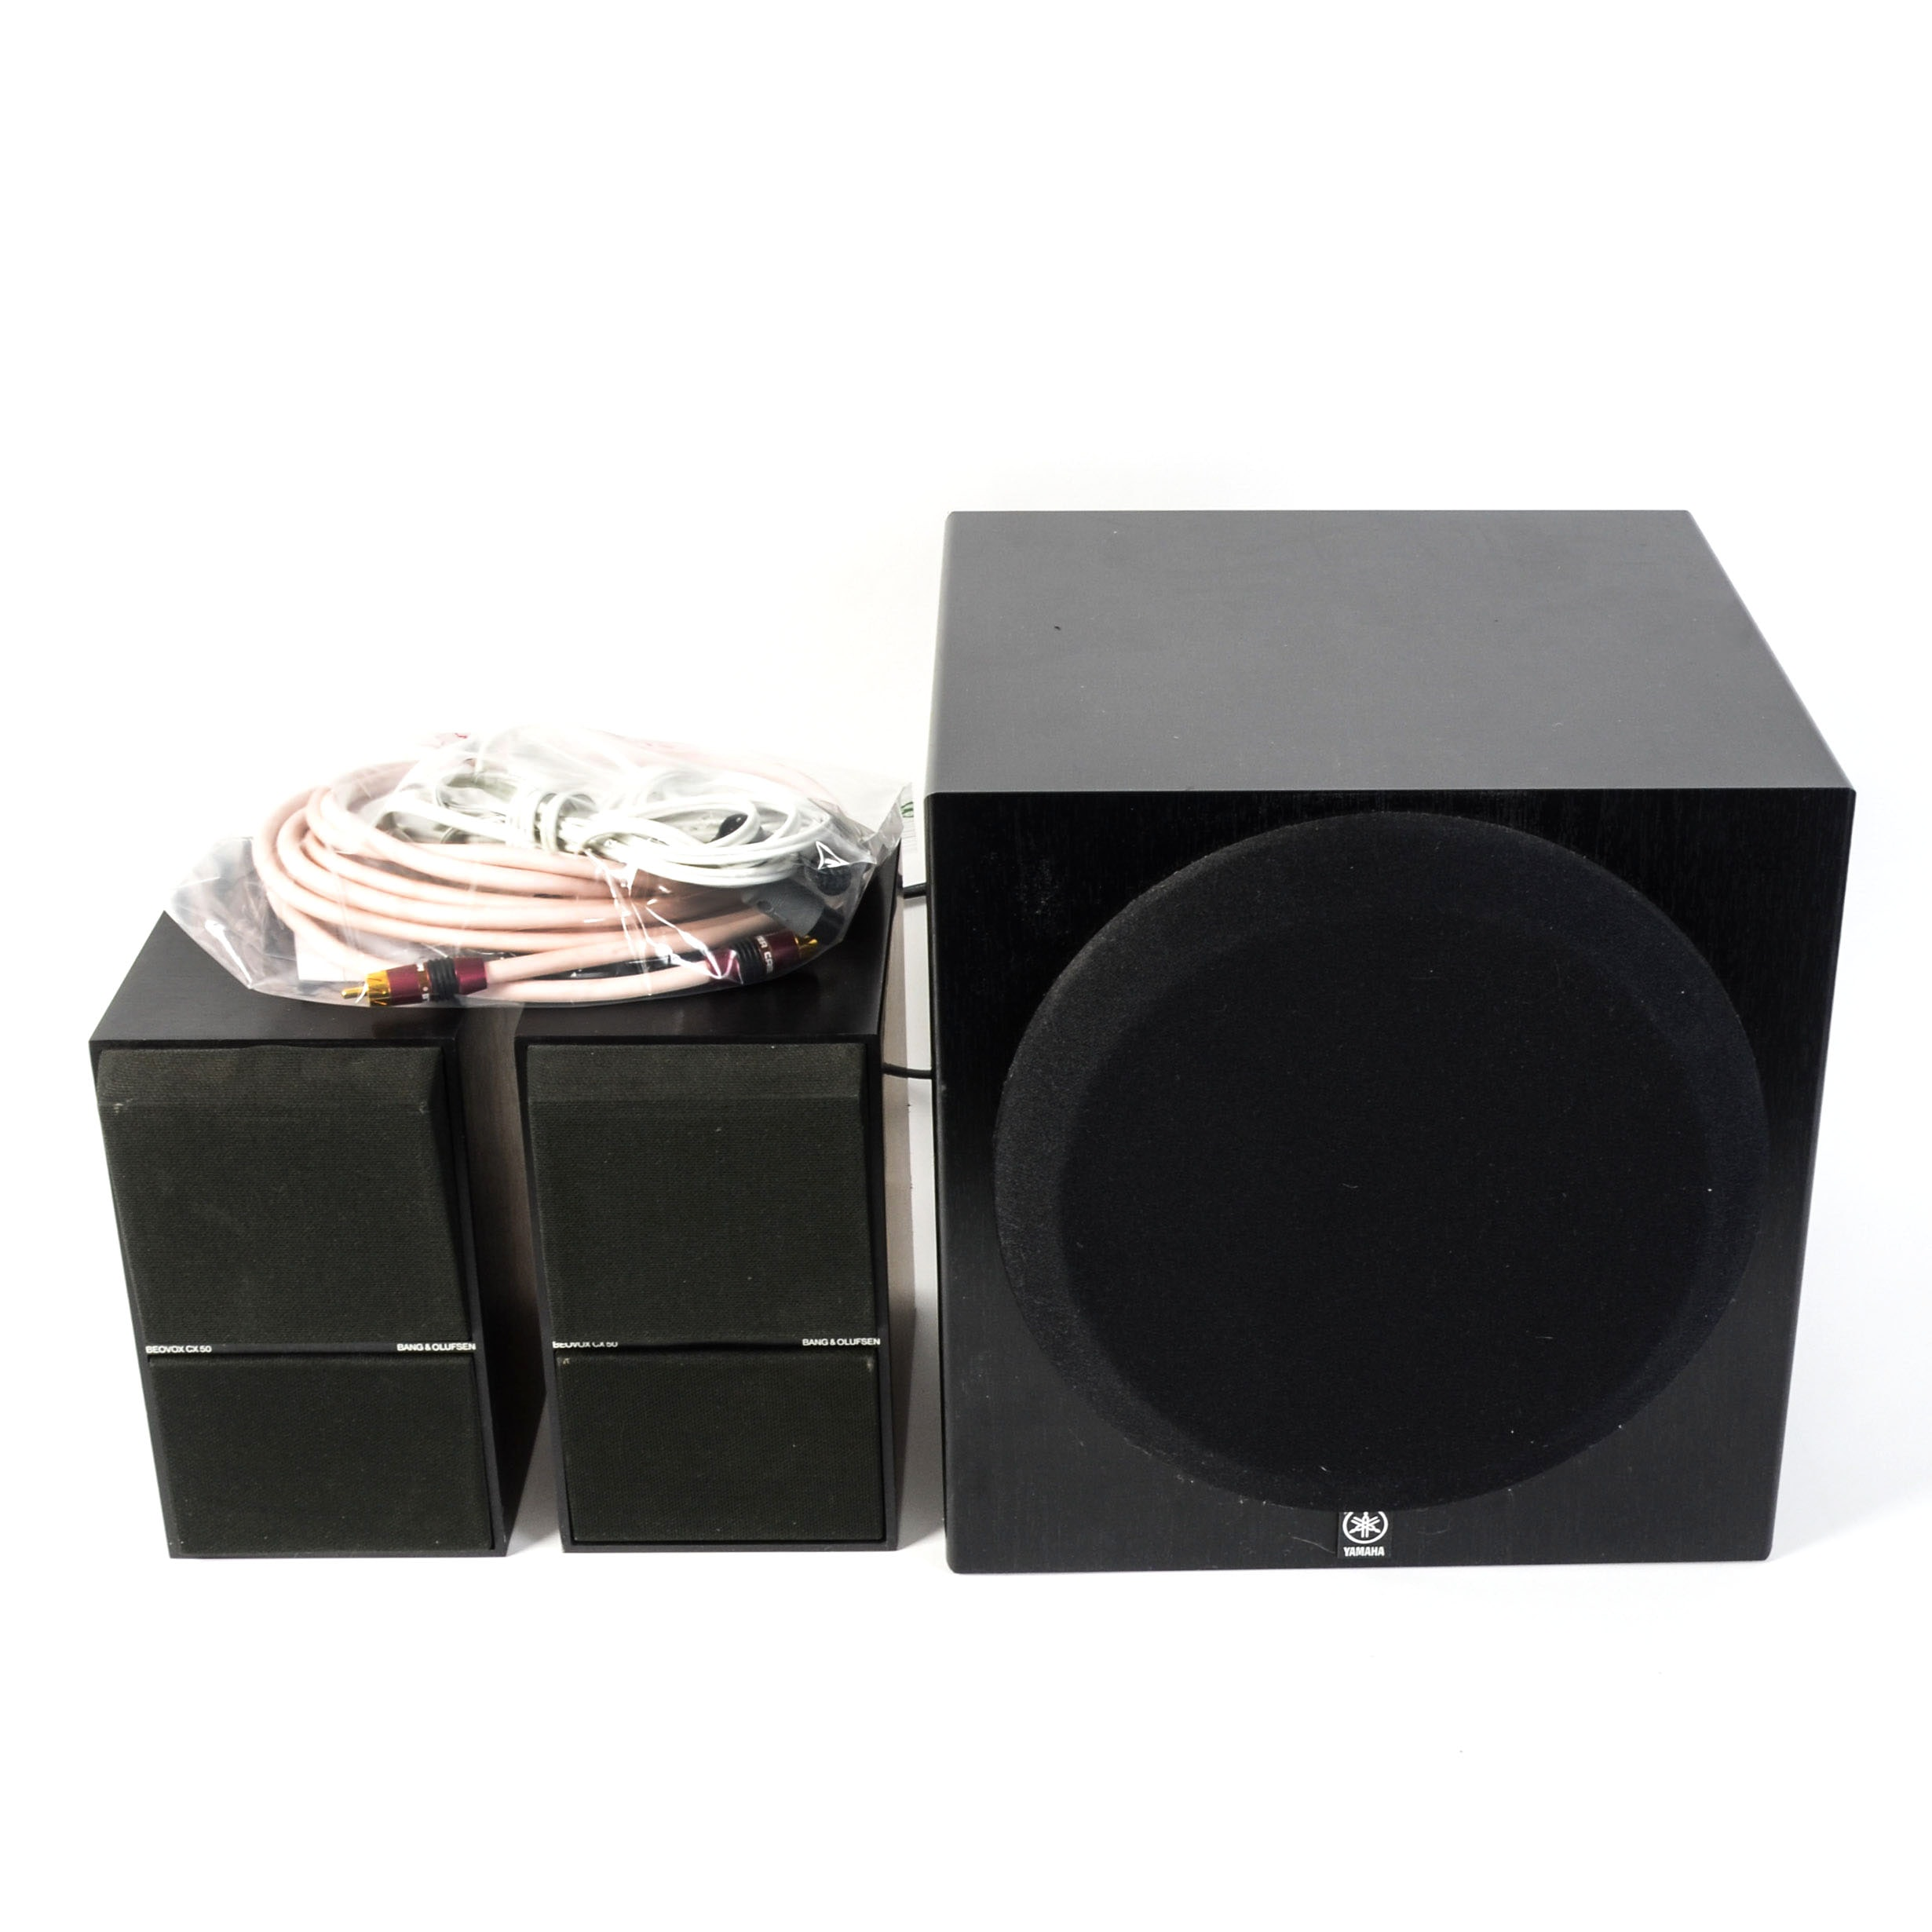 Bang & Olufsen Speakers and Yamaha Subwoofer